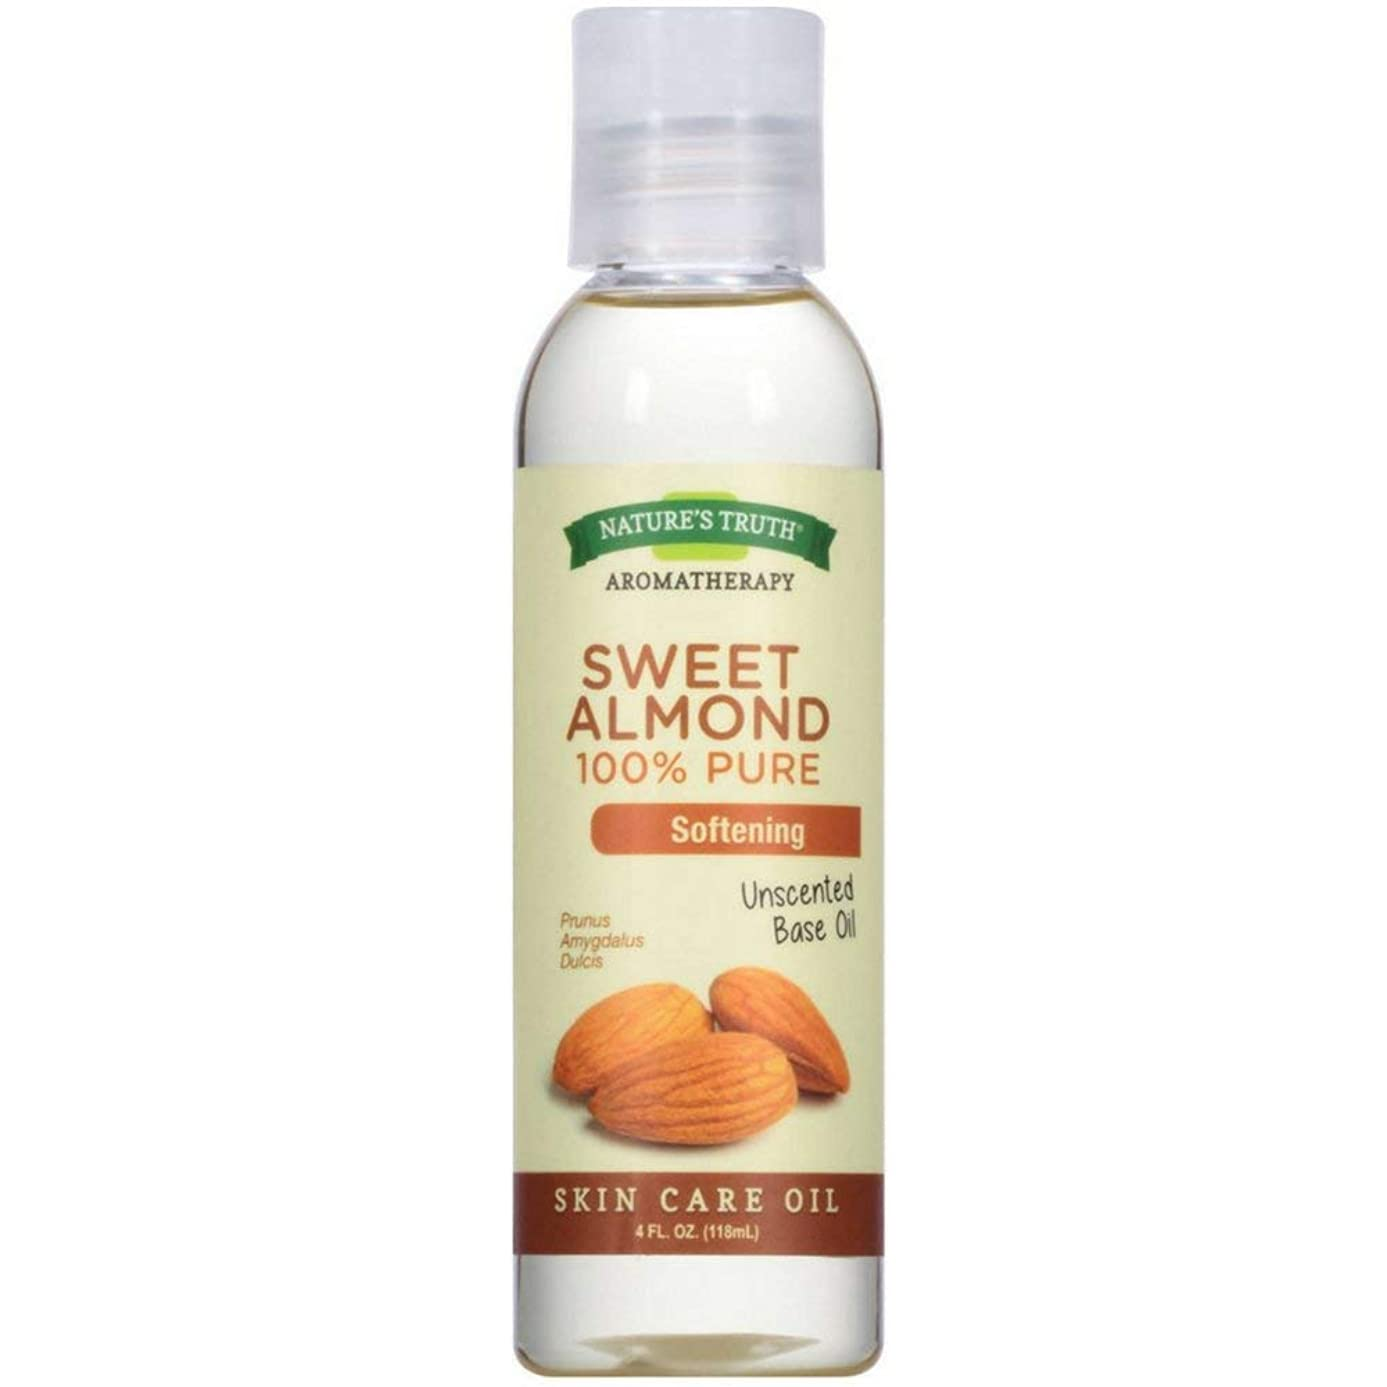 Nature's Truth 100% Pure Unscented Skin Care Base Oil, Sweet Almond 4 oz ( Pack of 4)